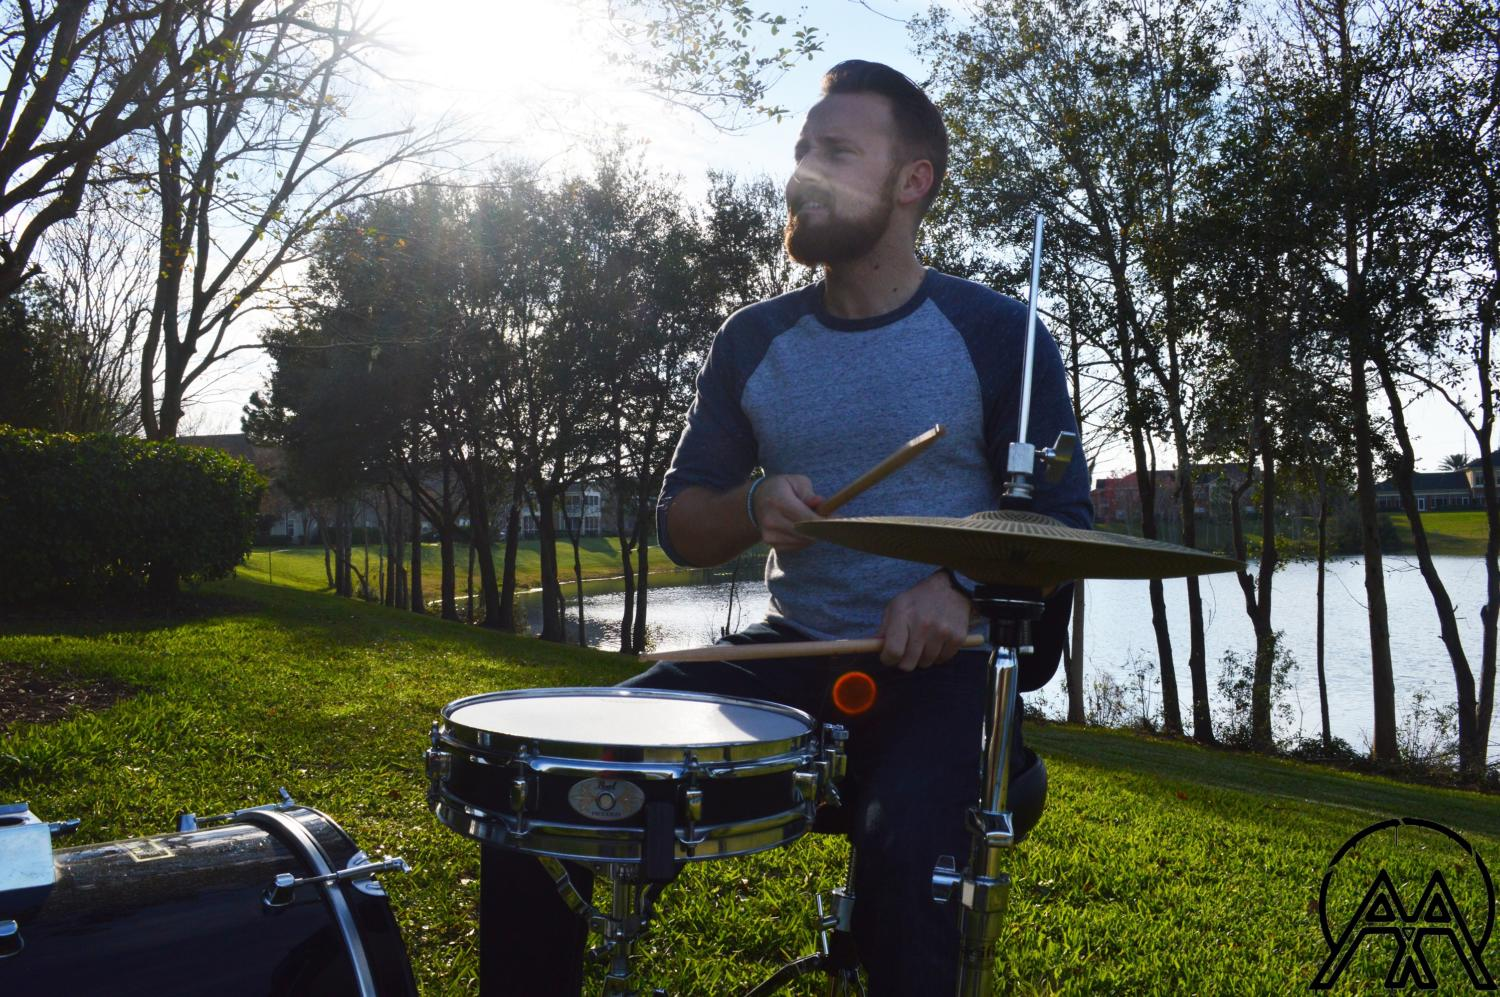 Follow Greg Hersey on Instagram @greghersey and marvel at his drumming godhood status.